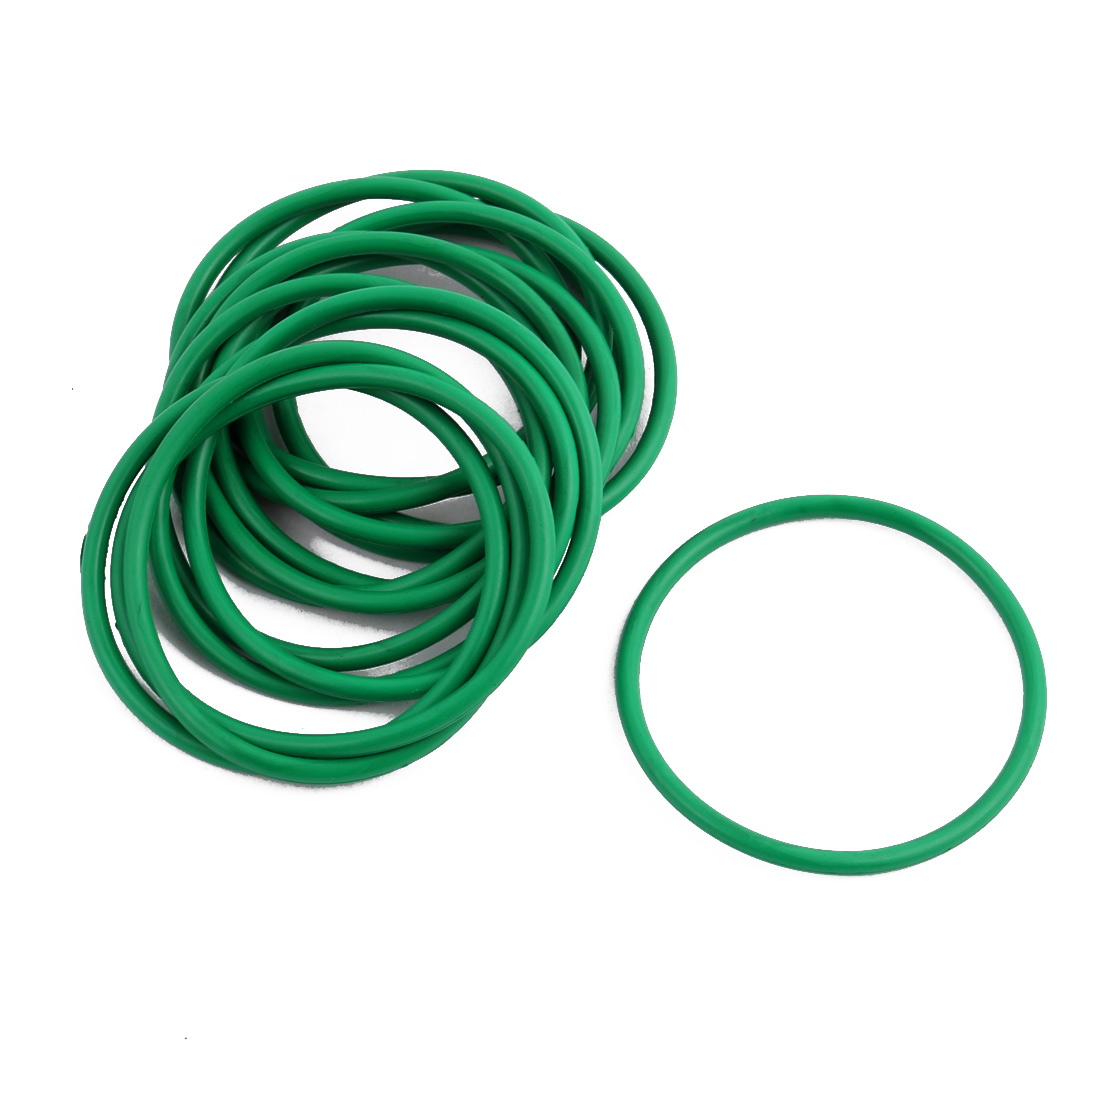 15 Pcs Green 34mm x 1.9mm NBR Oil Resistant Sealing Ring O-shape Grommets